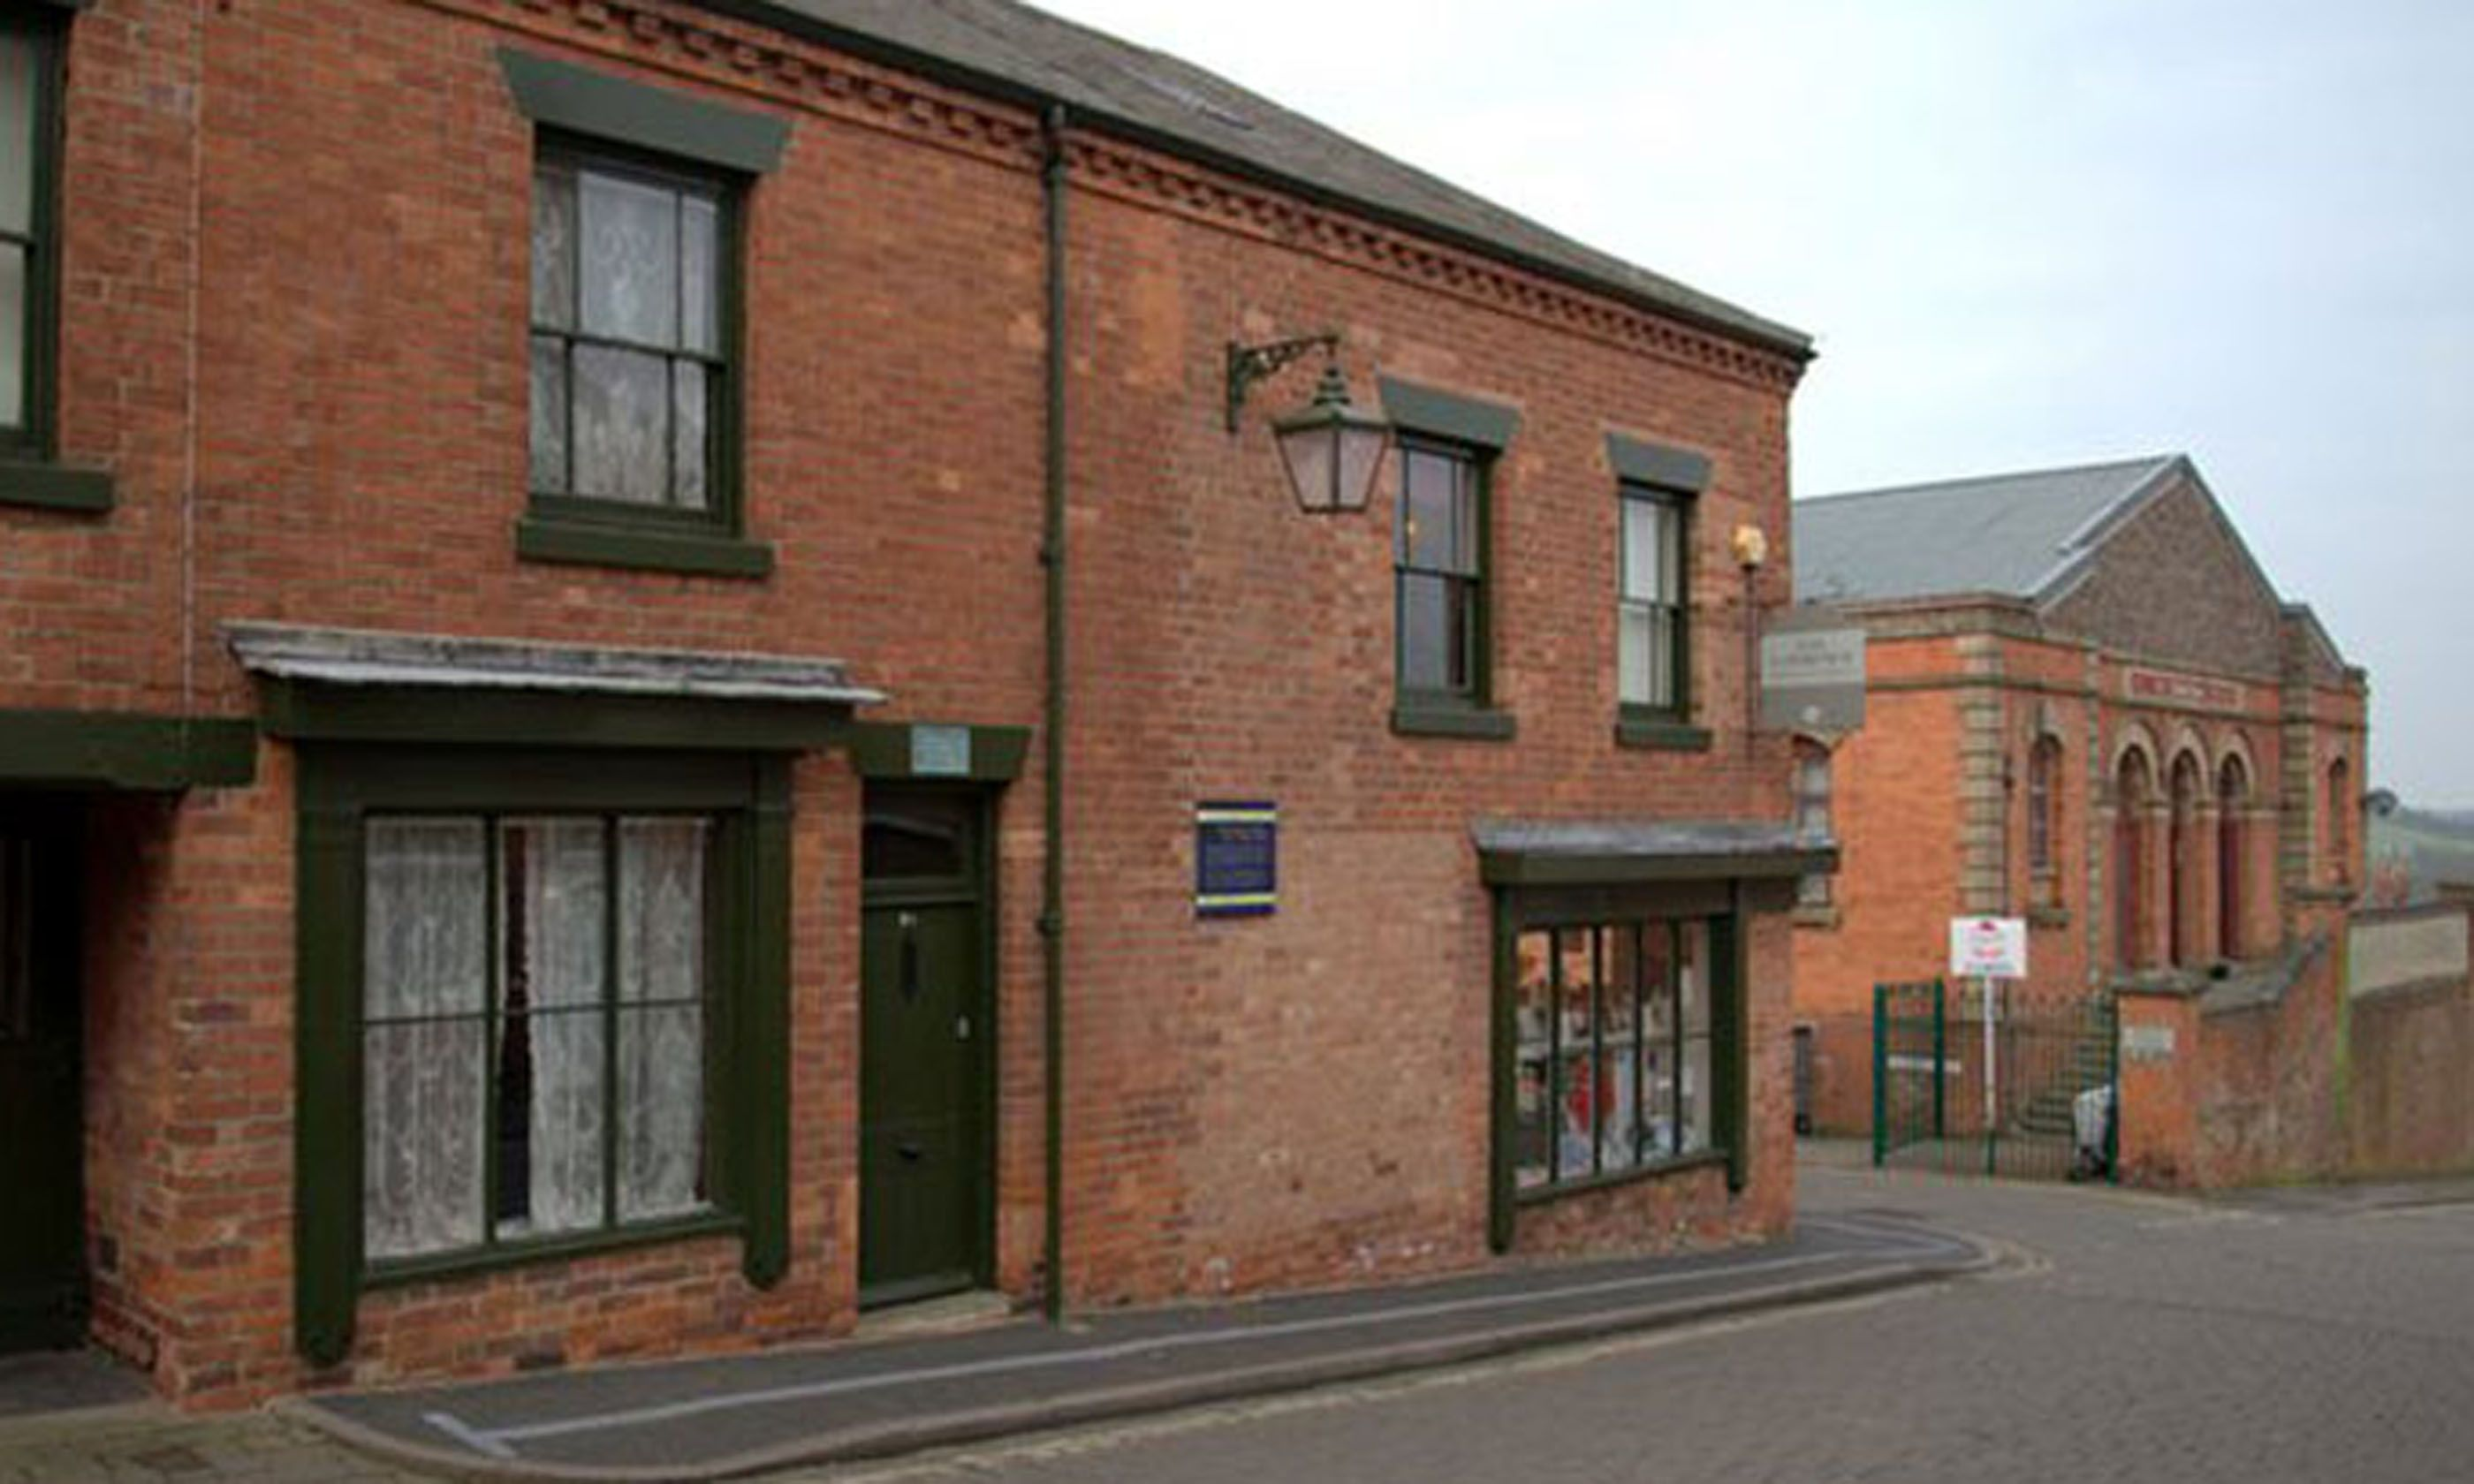 The house where Lawrence was born (DH Lawrence Brithplace Museum)